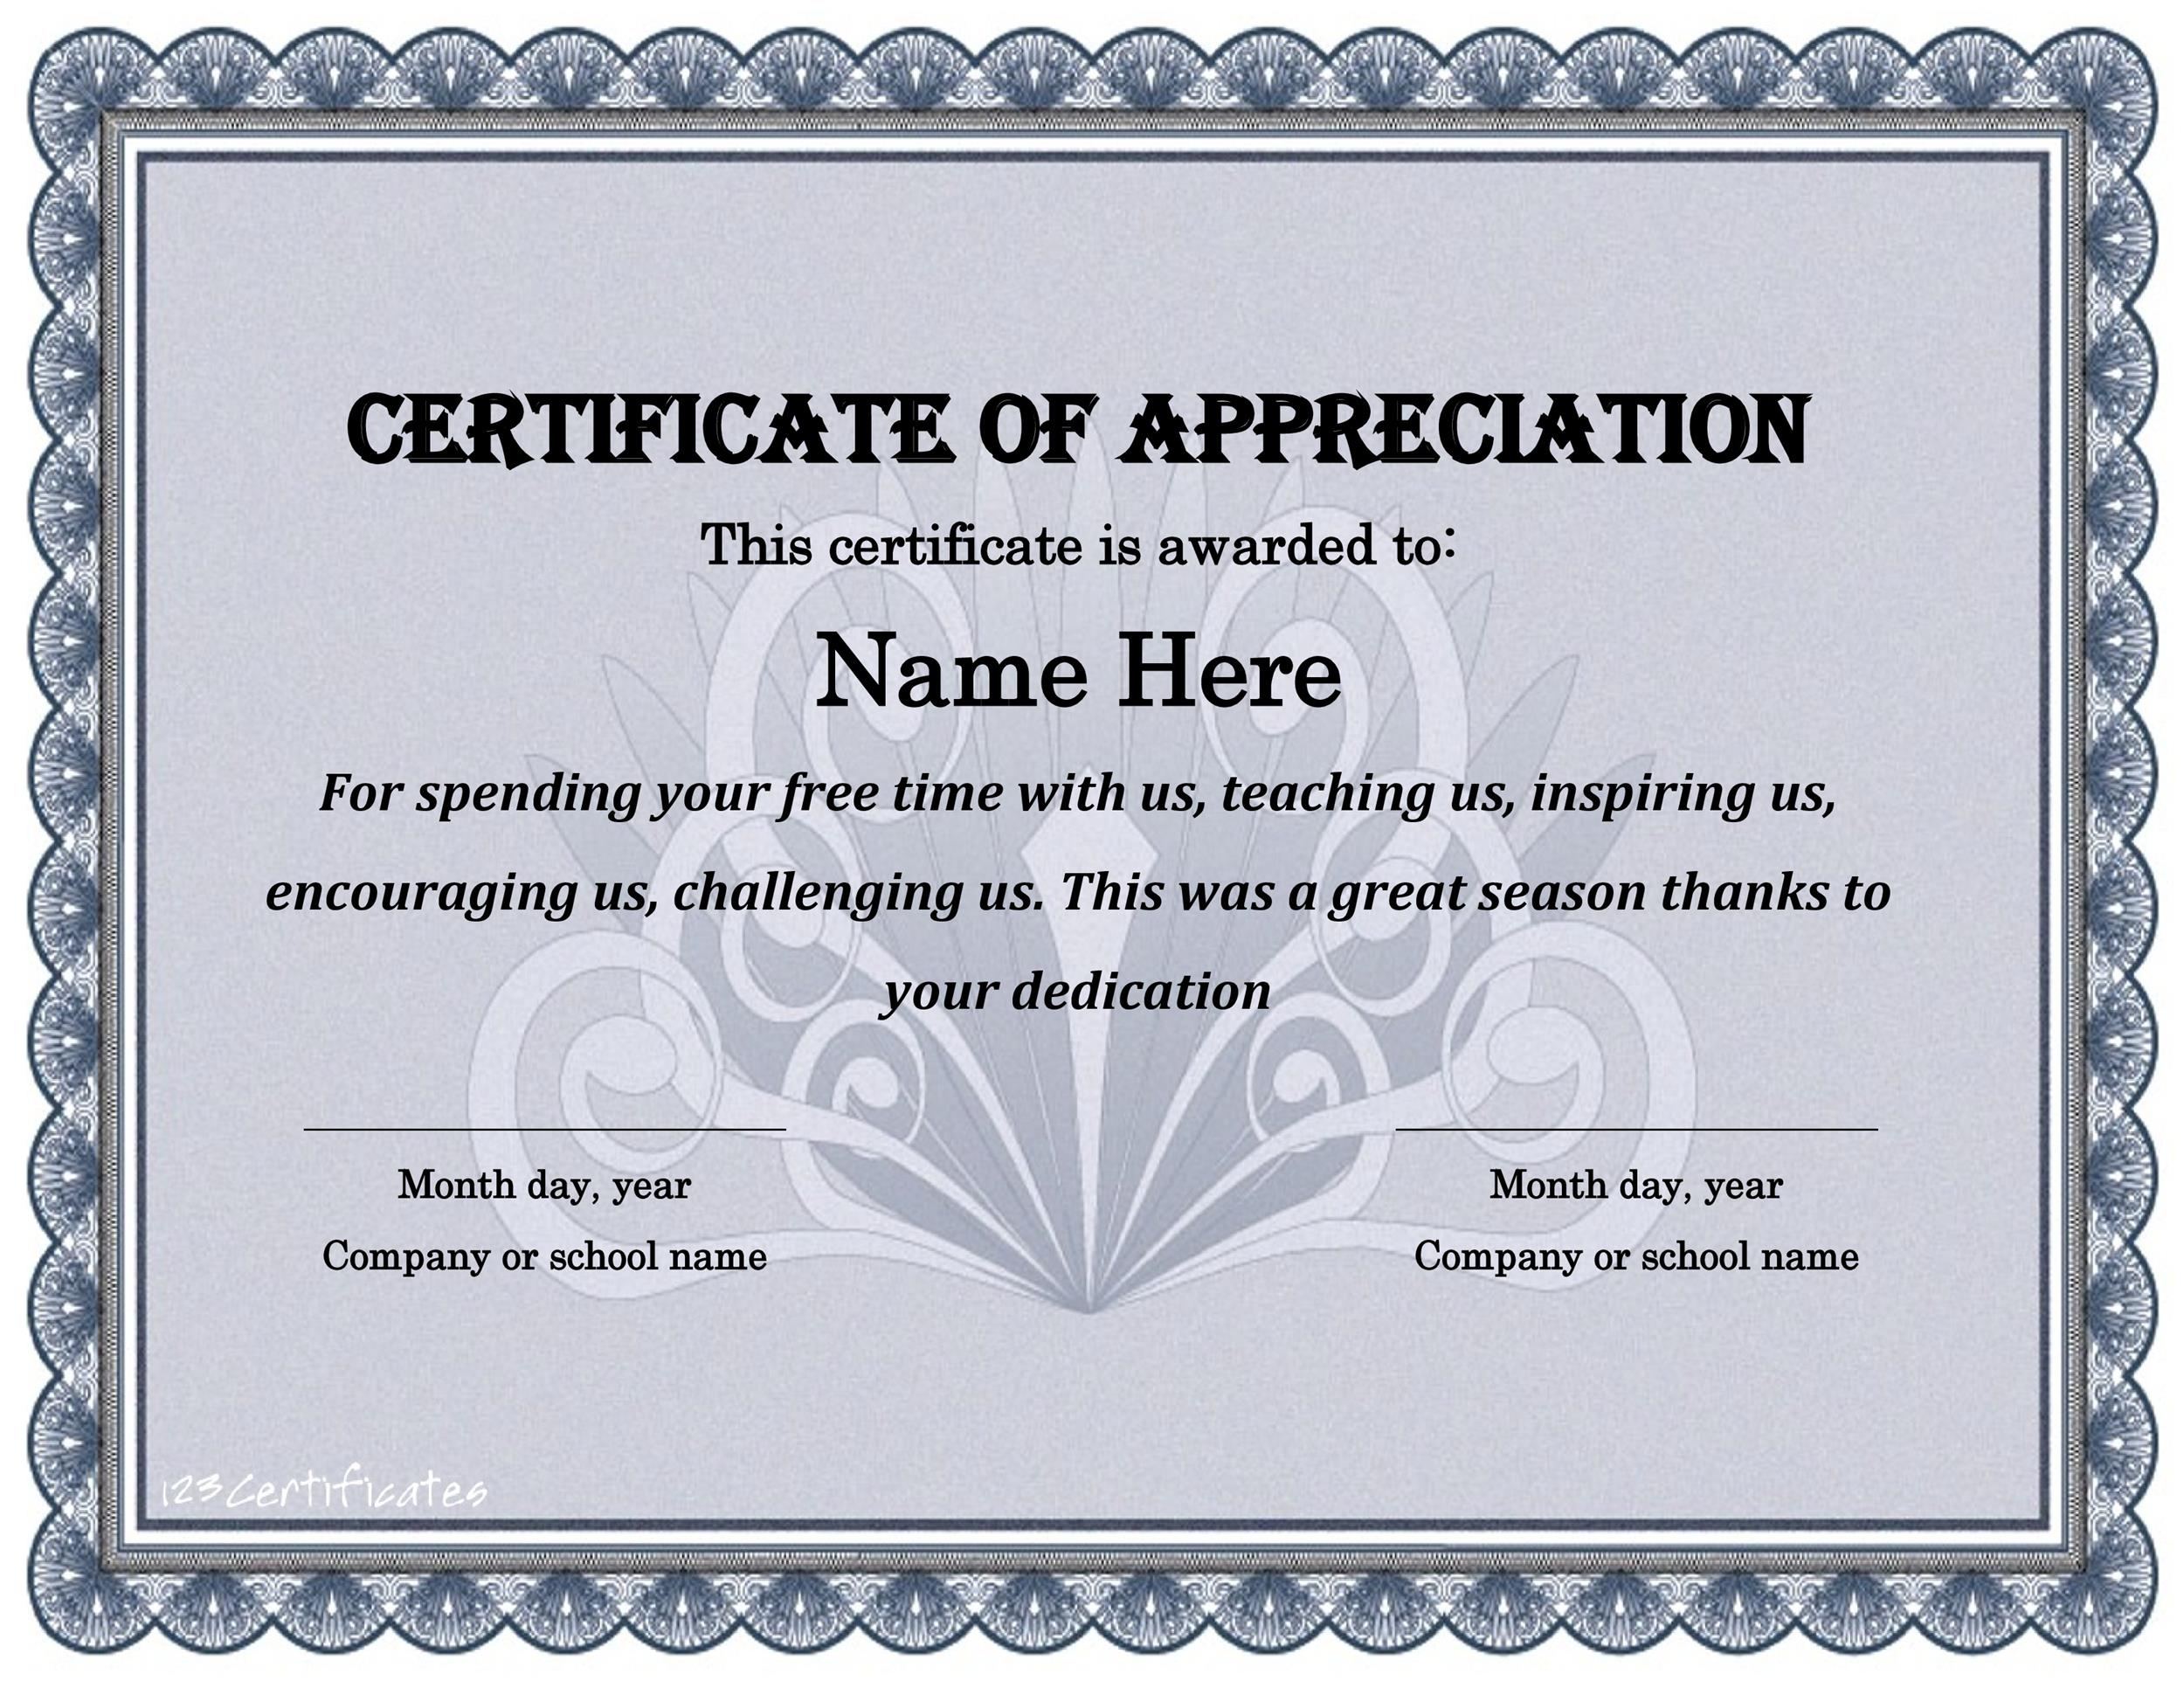 30 Free Certificate of Appreciation Templates and Letters – Certificate of Appreciation Wording Examples